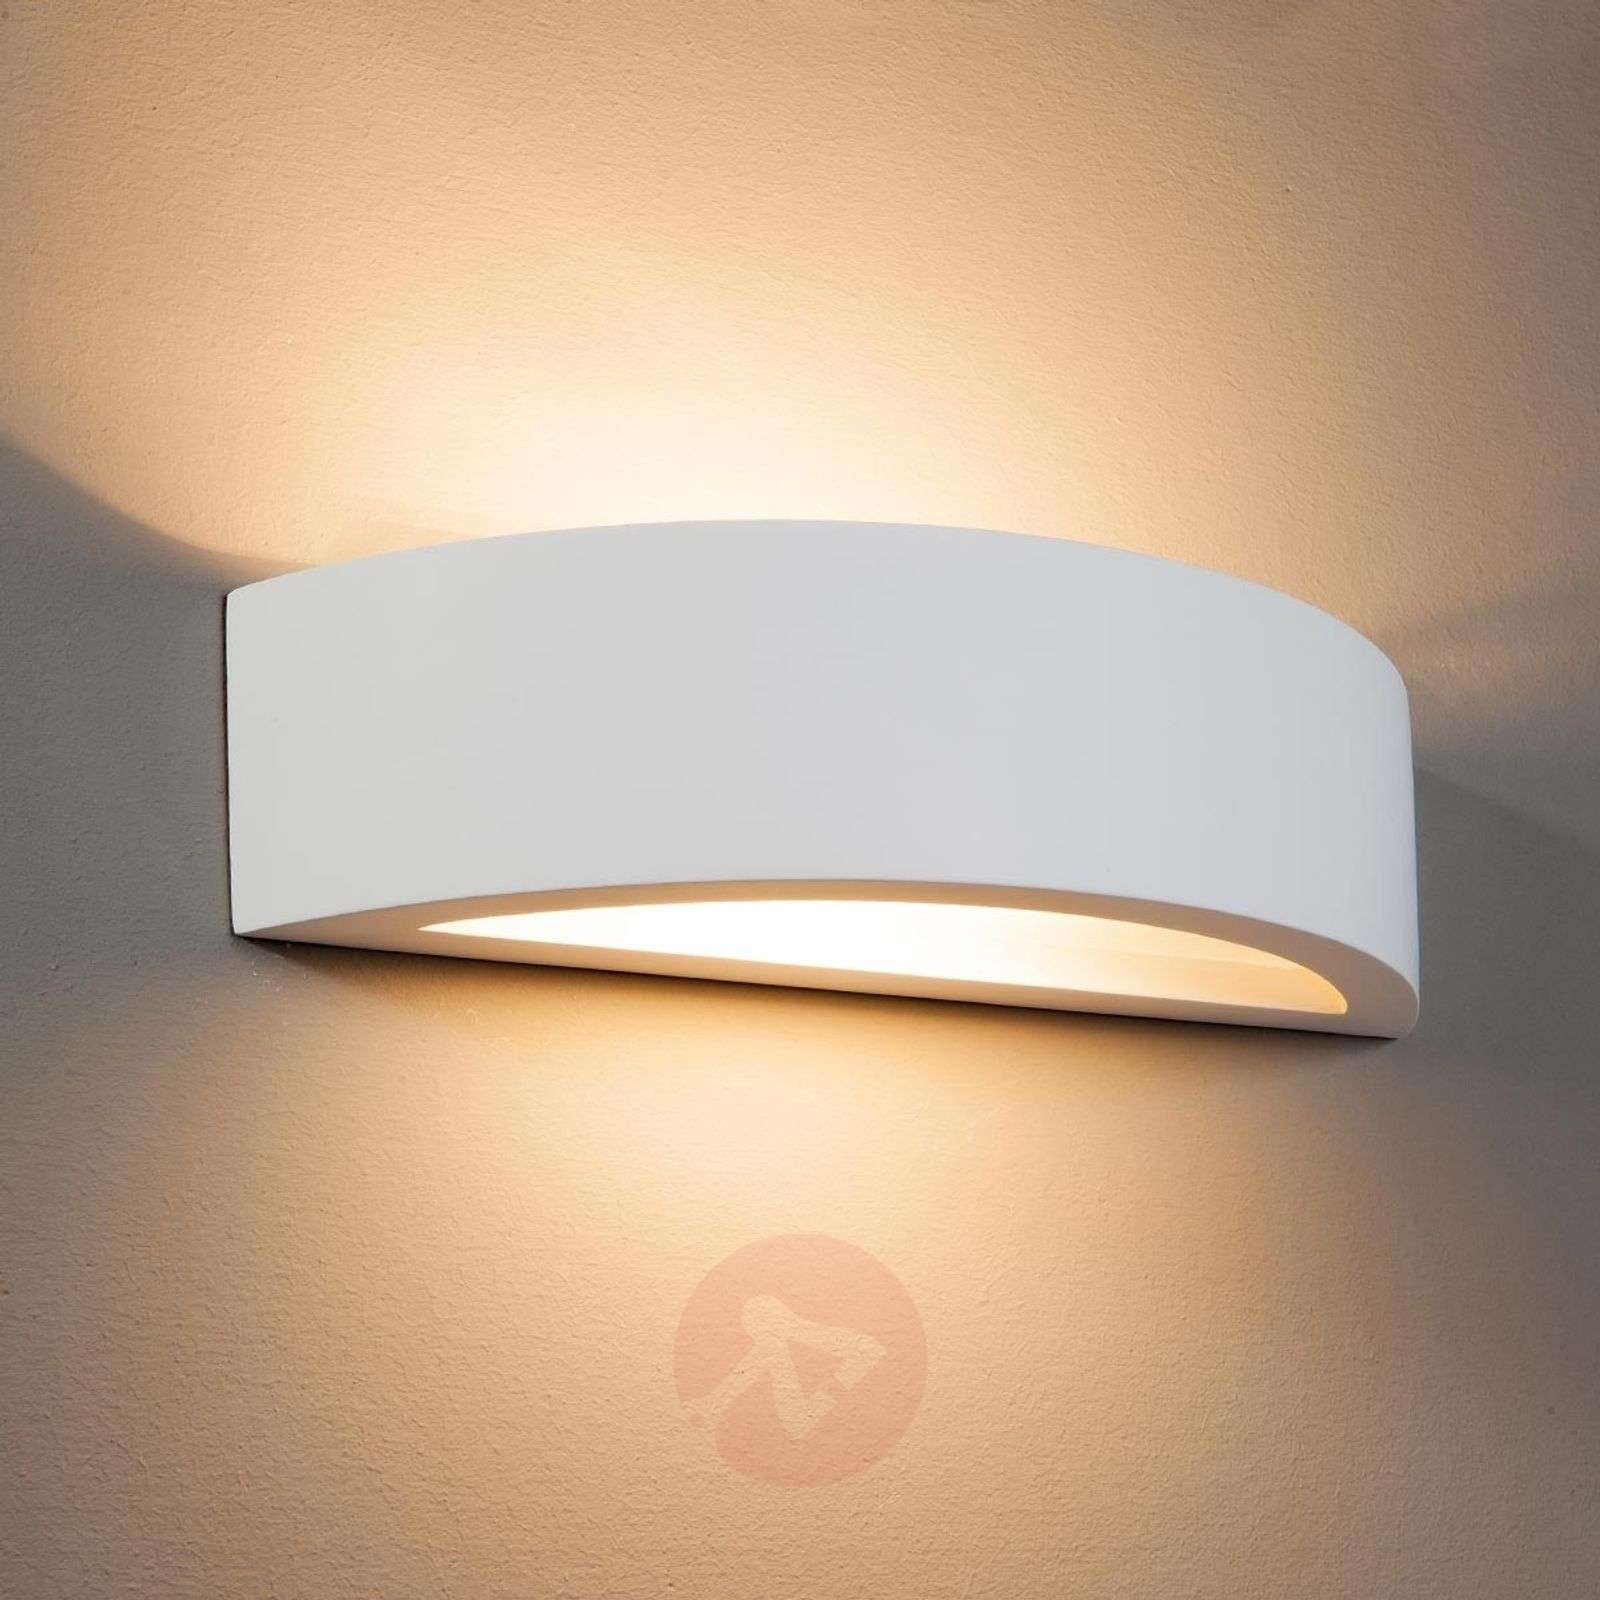 Curved Plaster Wall Lights : Konstantin Wall Light Curved Plaster White Lights.co.uk